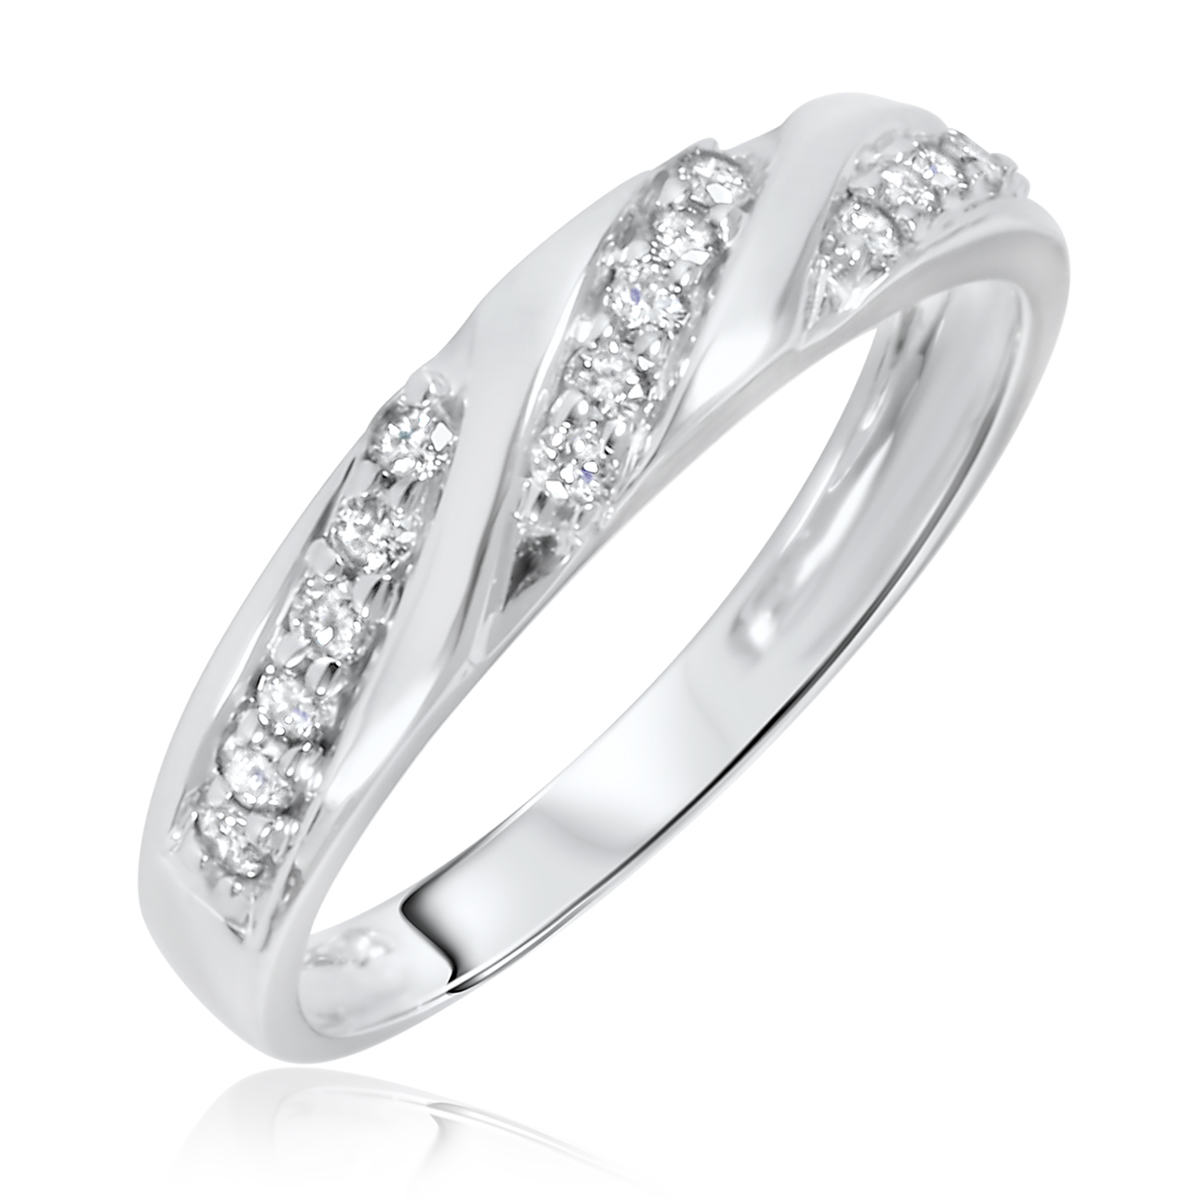 1 4 carat tw diamond women39s wedding ring 10k white gold for Wedding rings in white gold